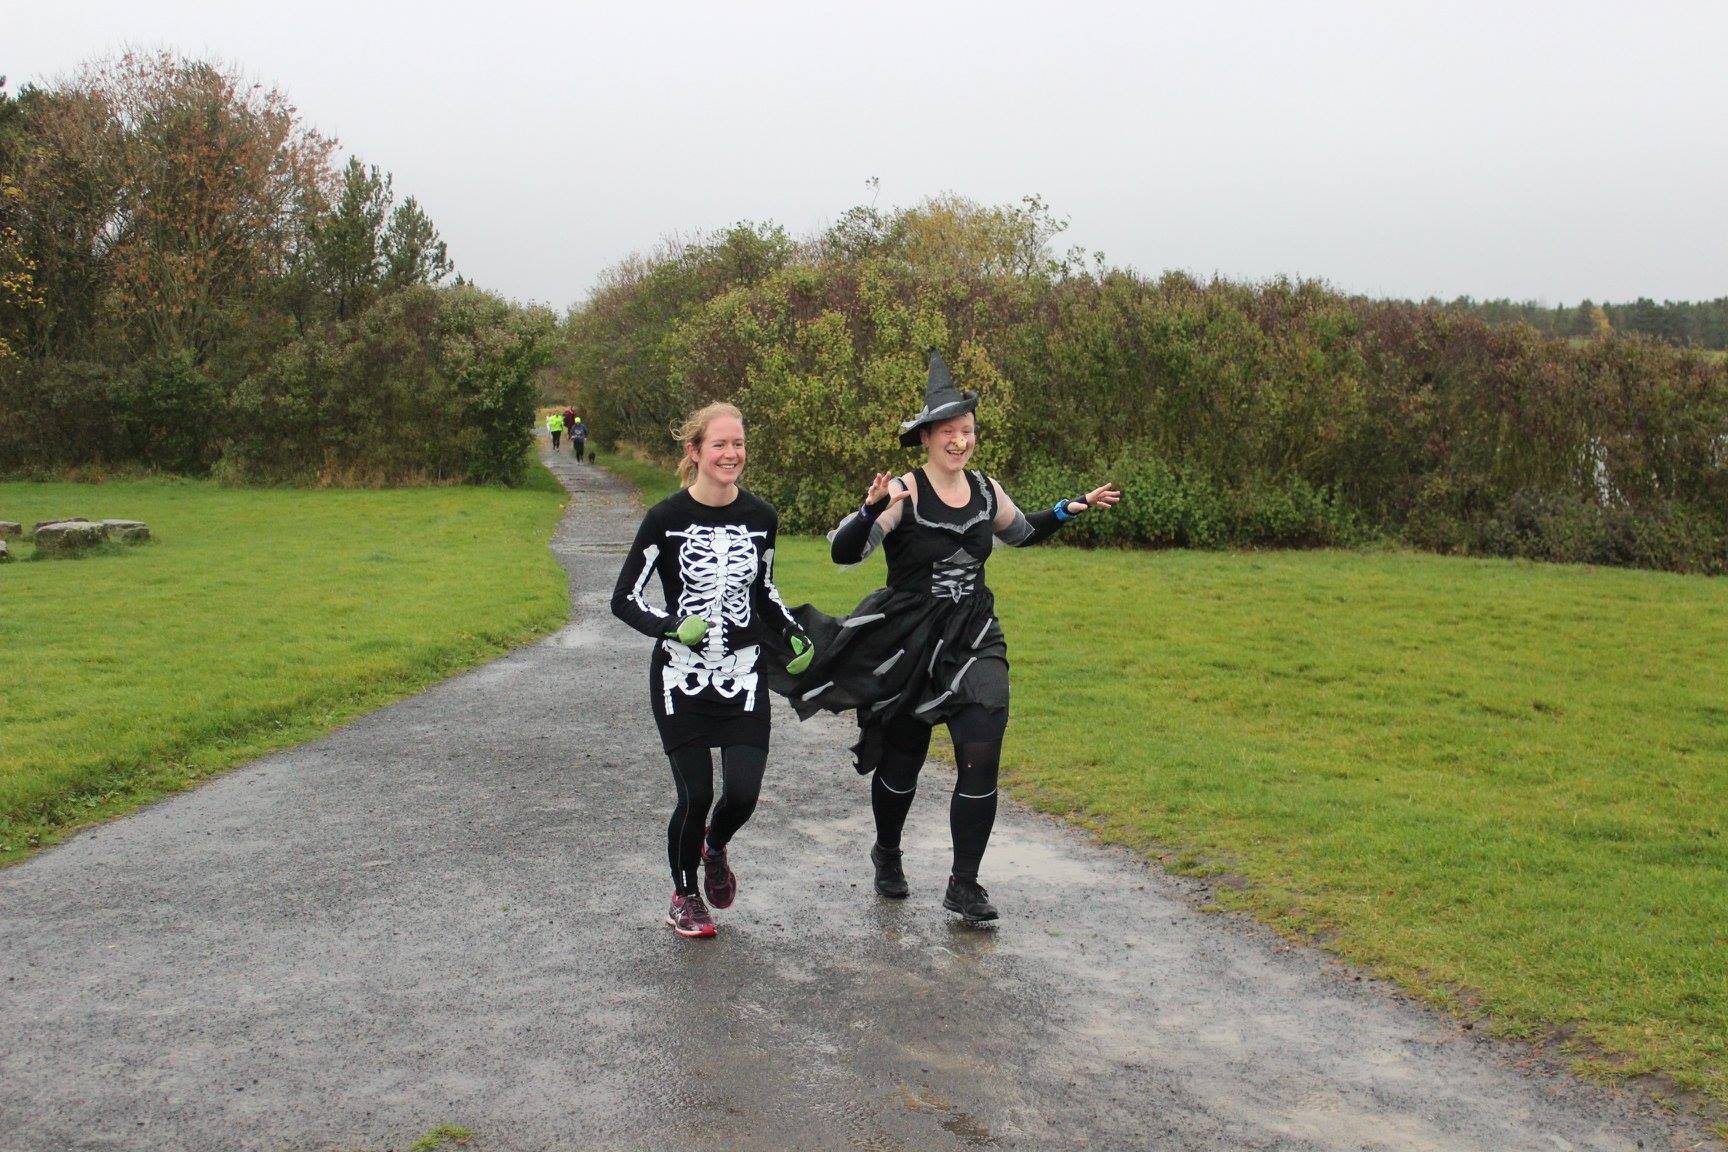 Alice Tetley-Paul and Georgina Tetley-Paul dressed for Hallowe'en at Druridge Bay parkrun.